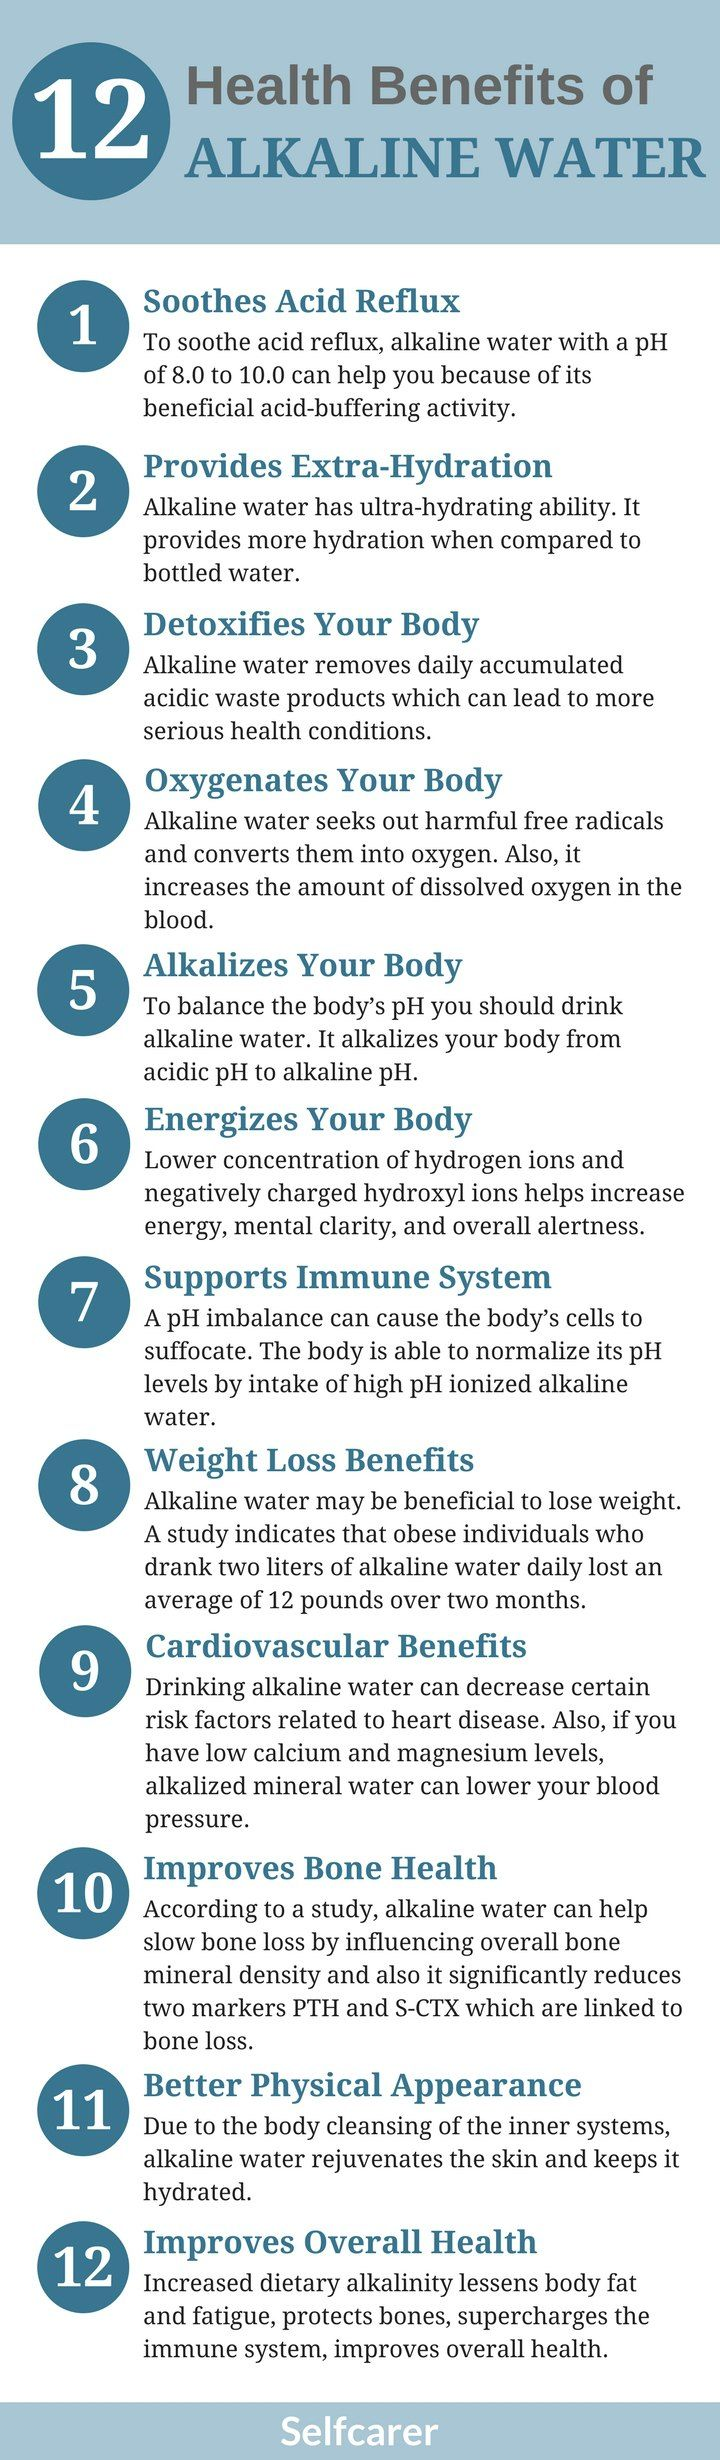 It is not the fountain of youth but the health benefits of drinking alkaline water are numerous and remarkable.